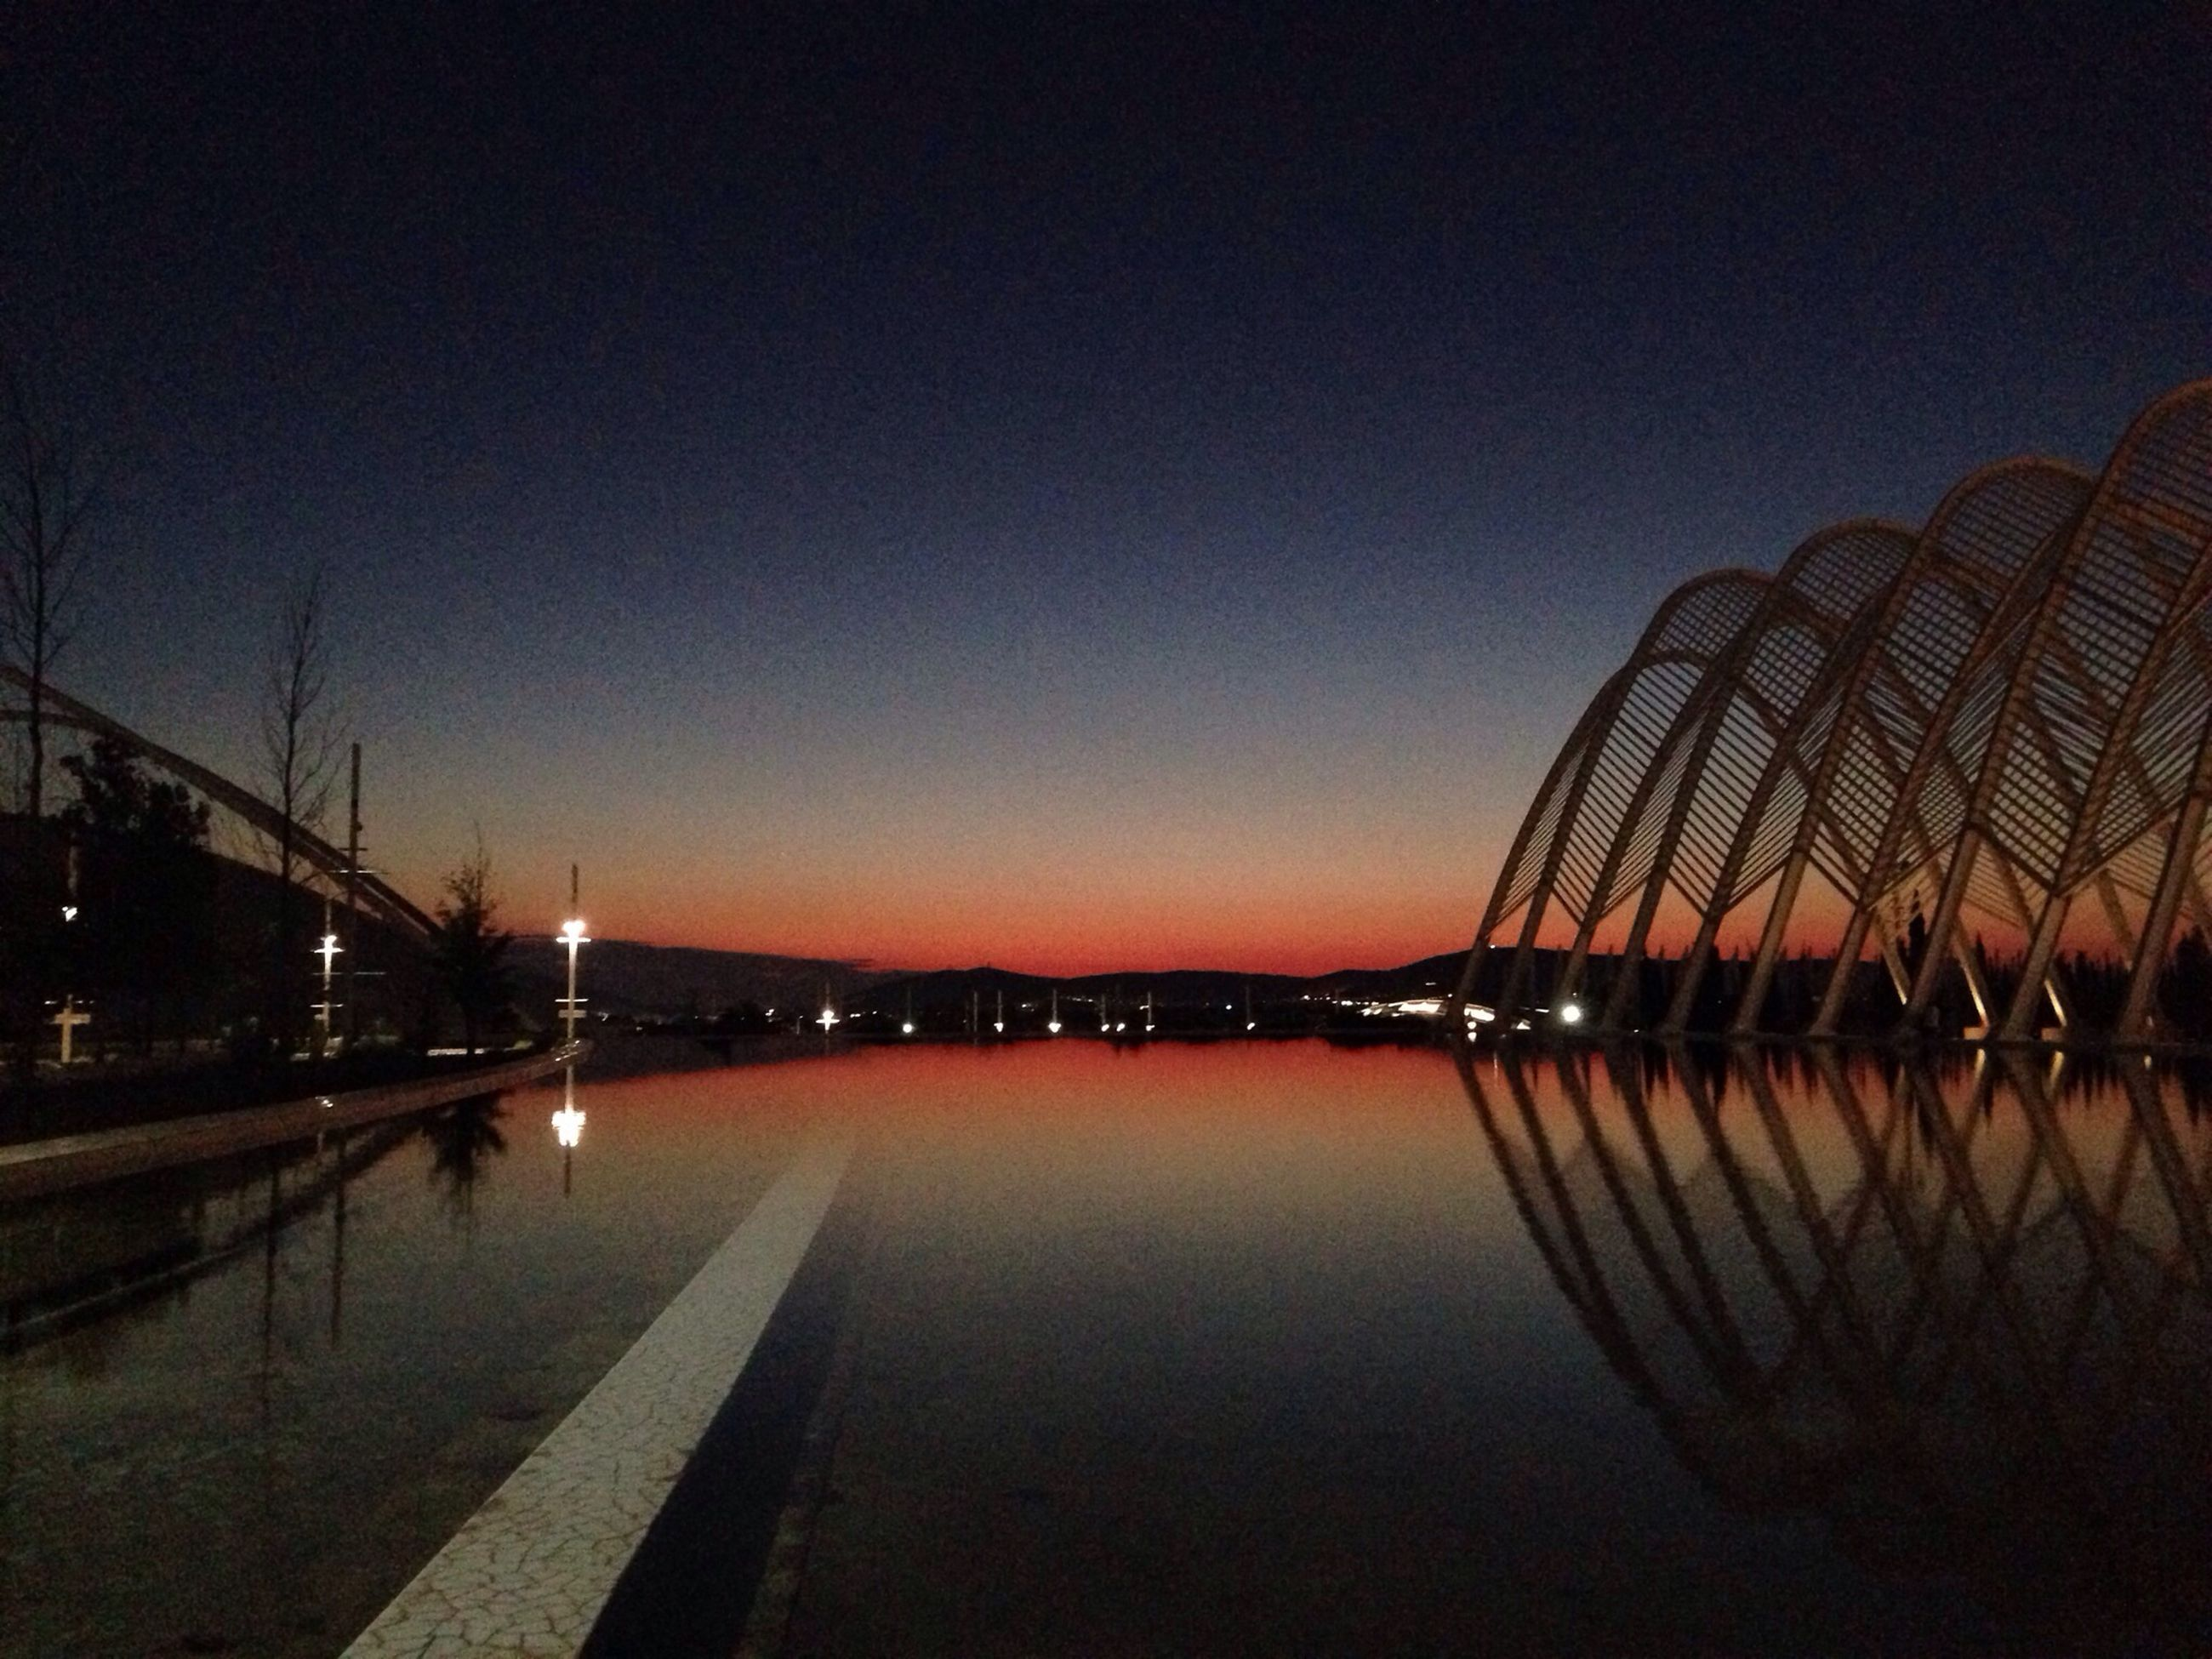 illuminated, night, clear sky, water, copy space, reflection, river, connection, bridge - man made structure, built structure, dusk, transportation, street light, tranquility, tranquil scene, lighting equipment, architecture, outdoors, bridge, waterfront